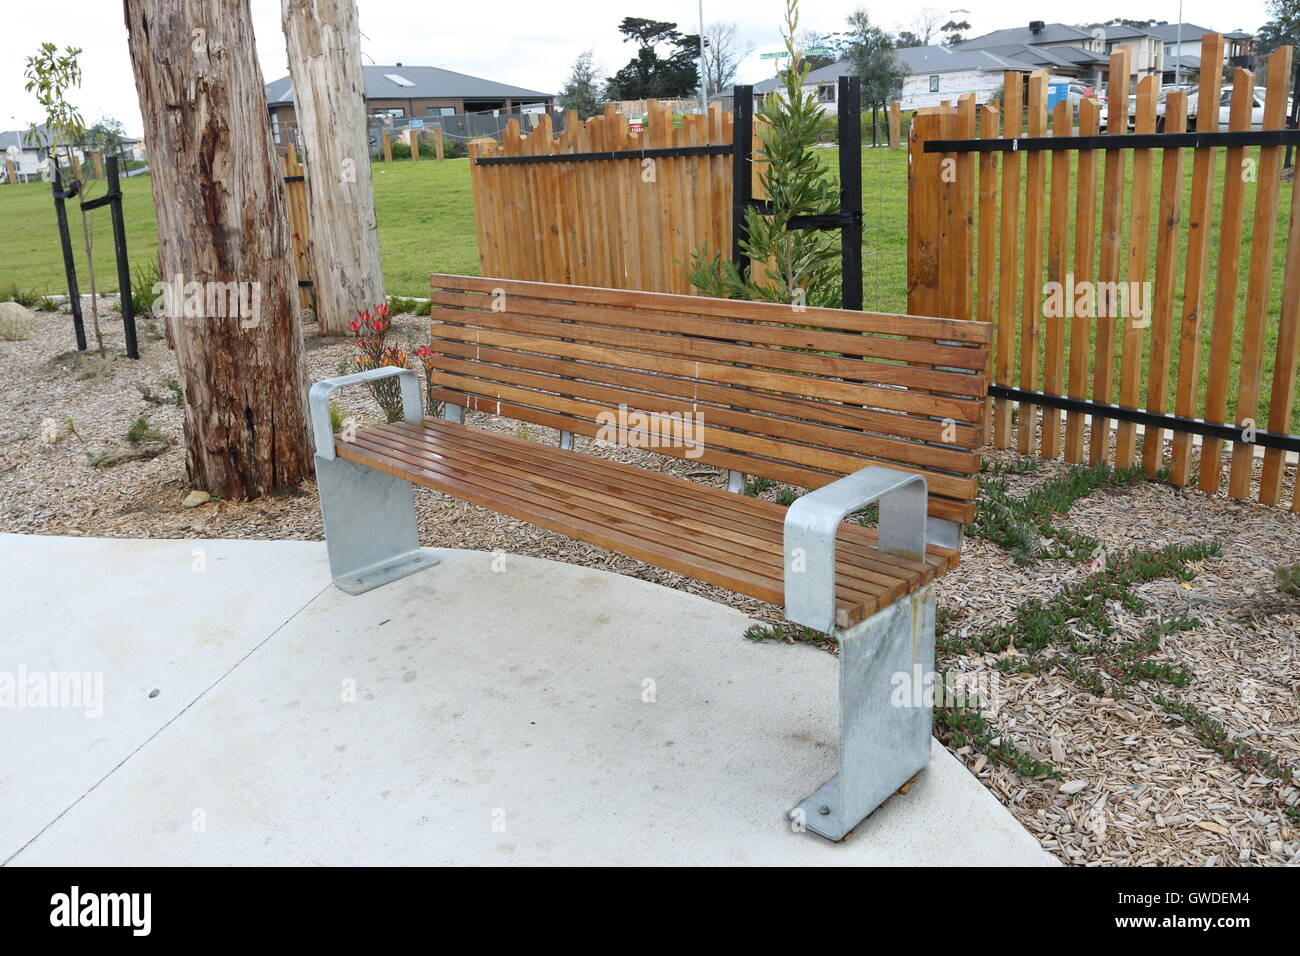 Garden Bench Australia Wooden Garden Bench At Megasaurus Playground Cranbourne East Stock